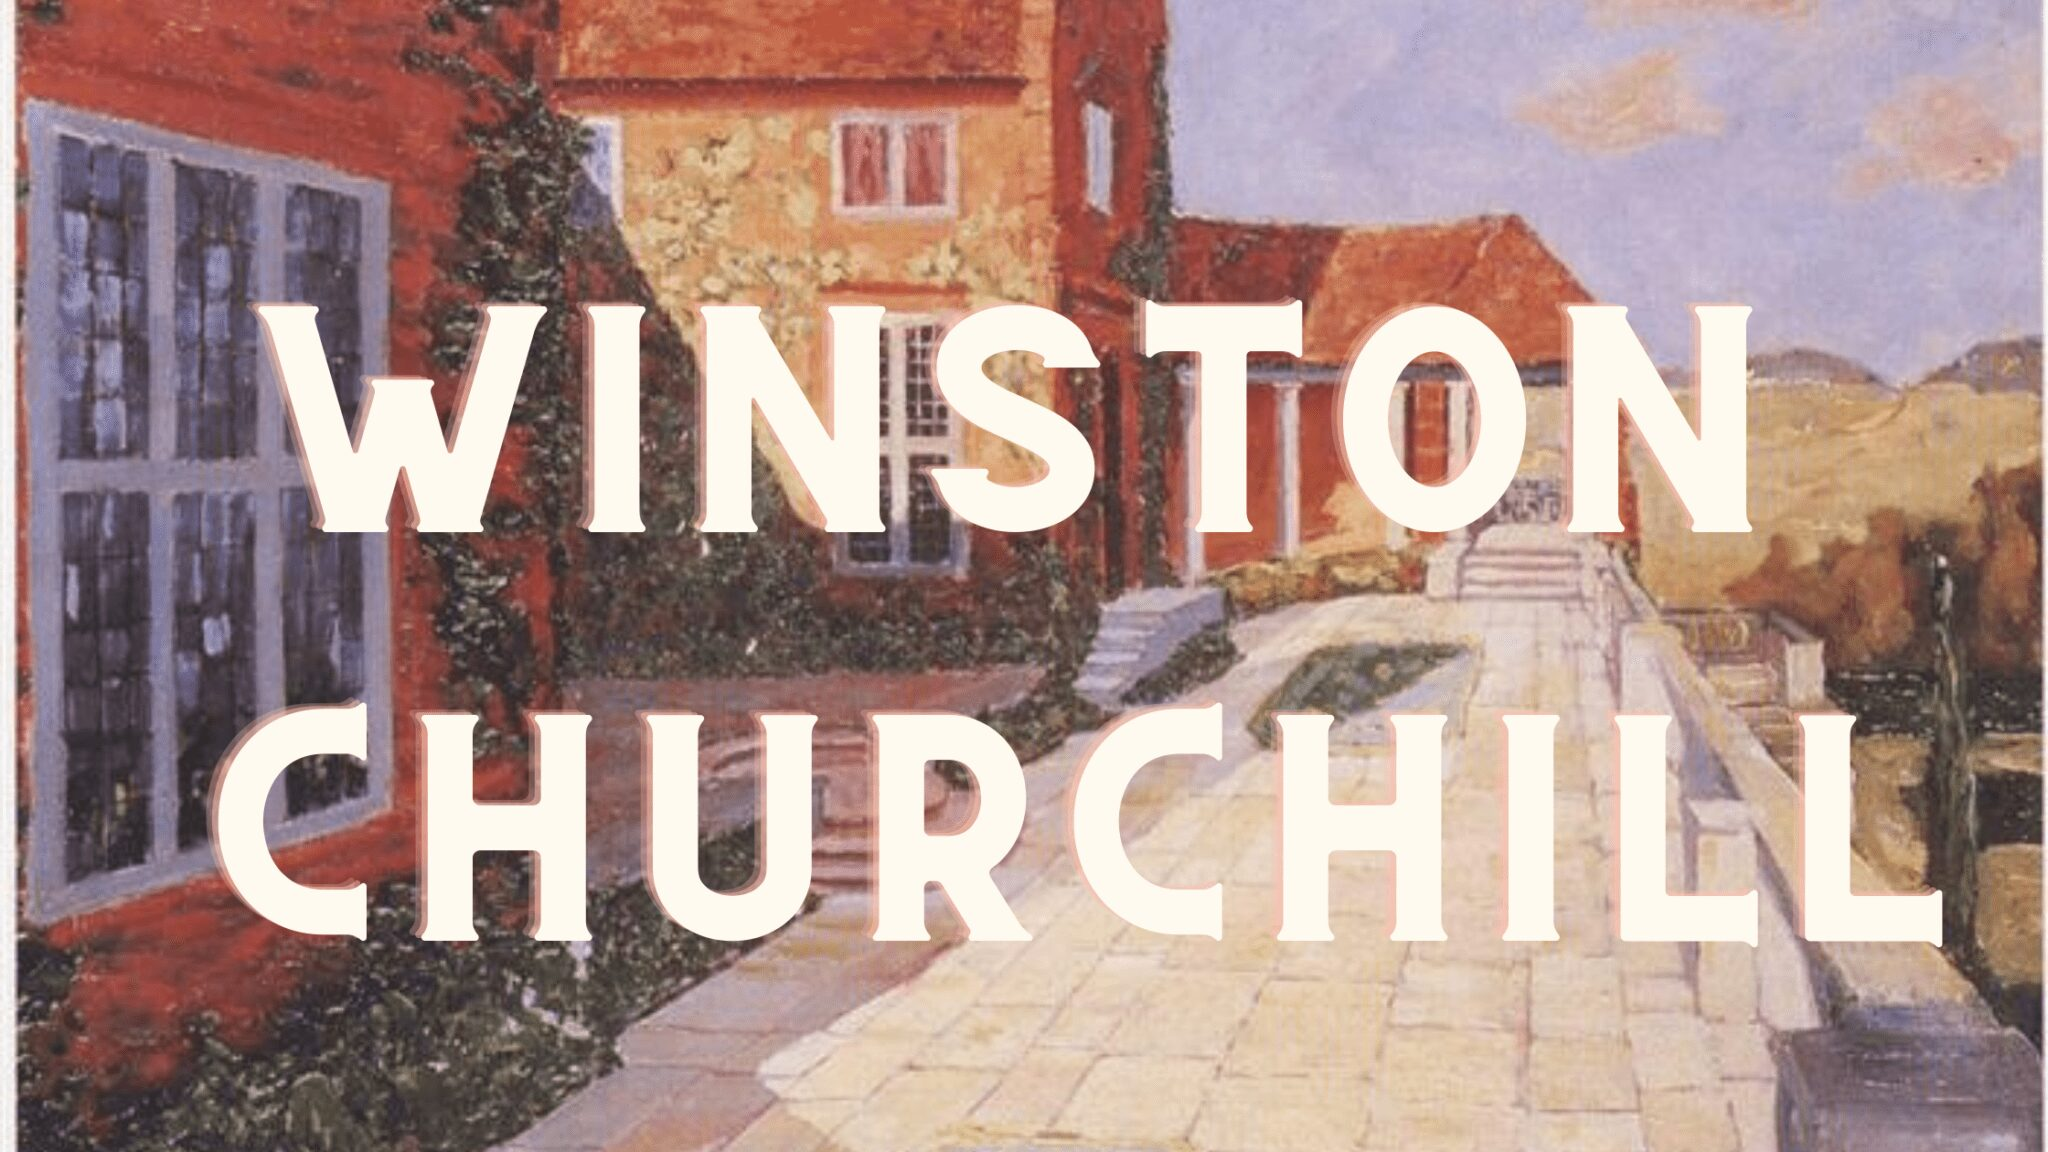 Winston Churchill painting images video compilation